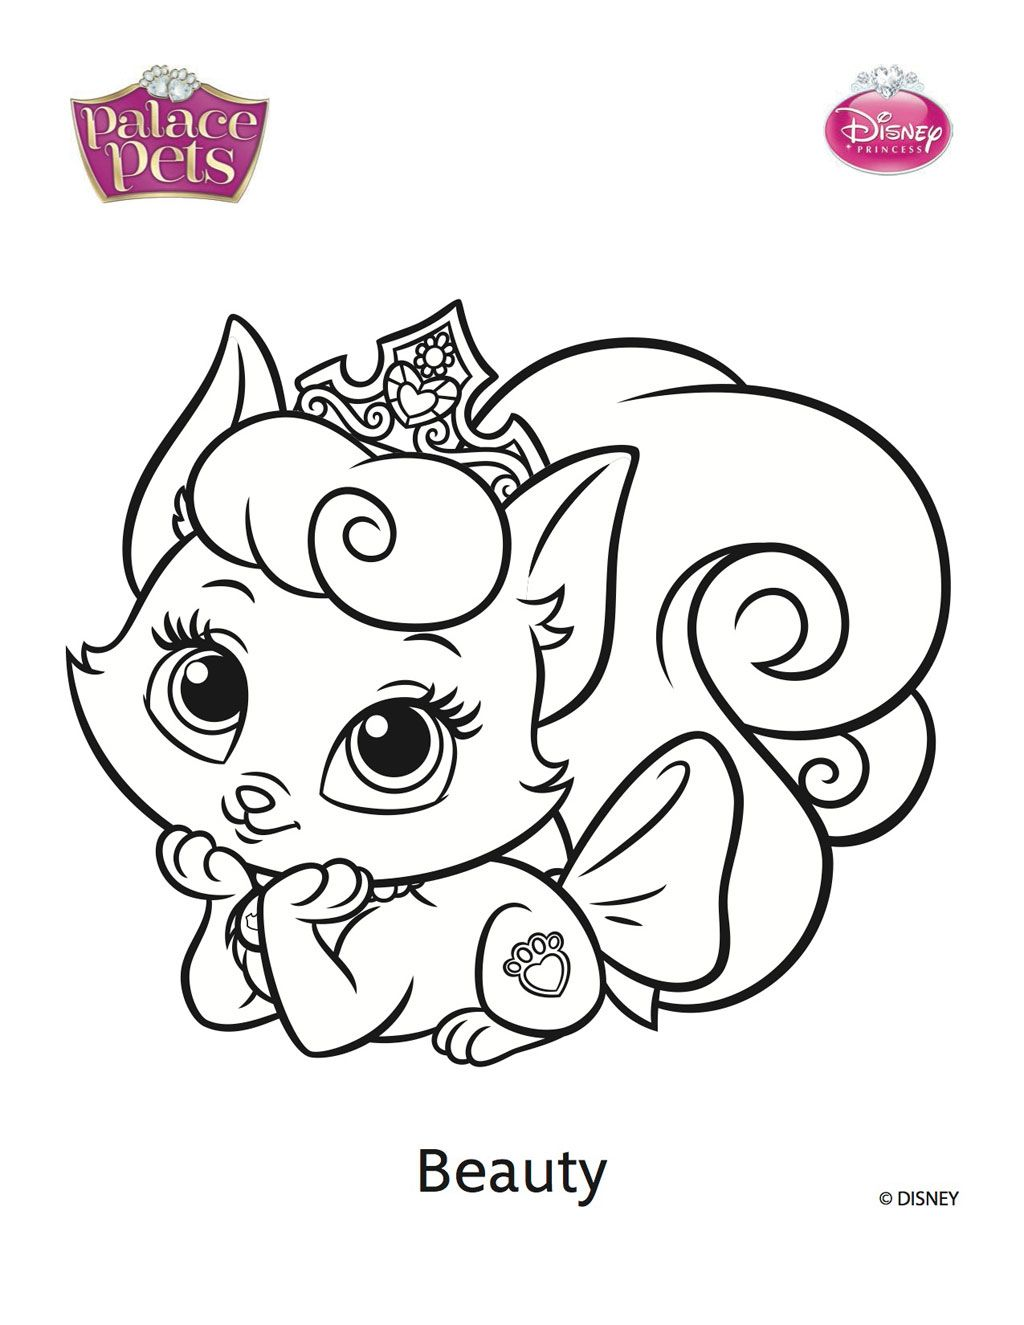 Beauty Palace Pets Coloring Pages Printable Coloring Pages High